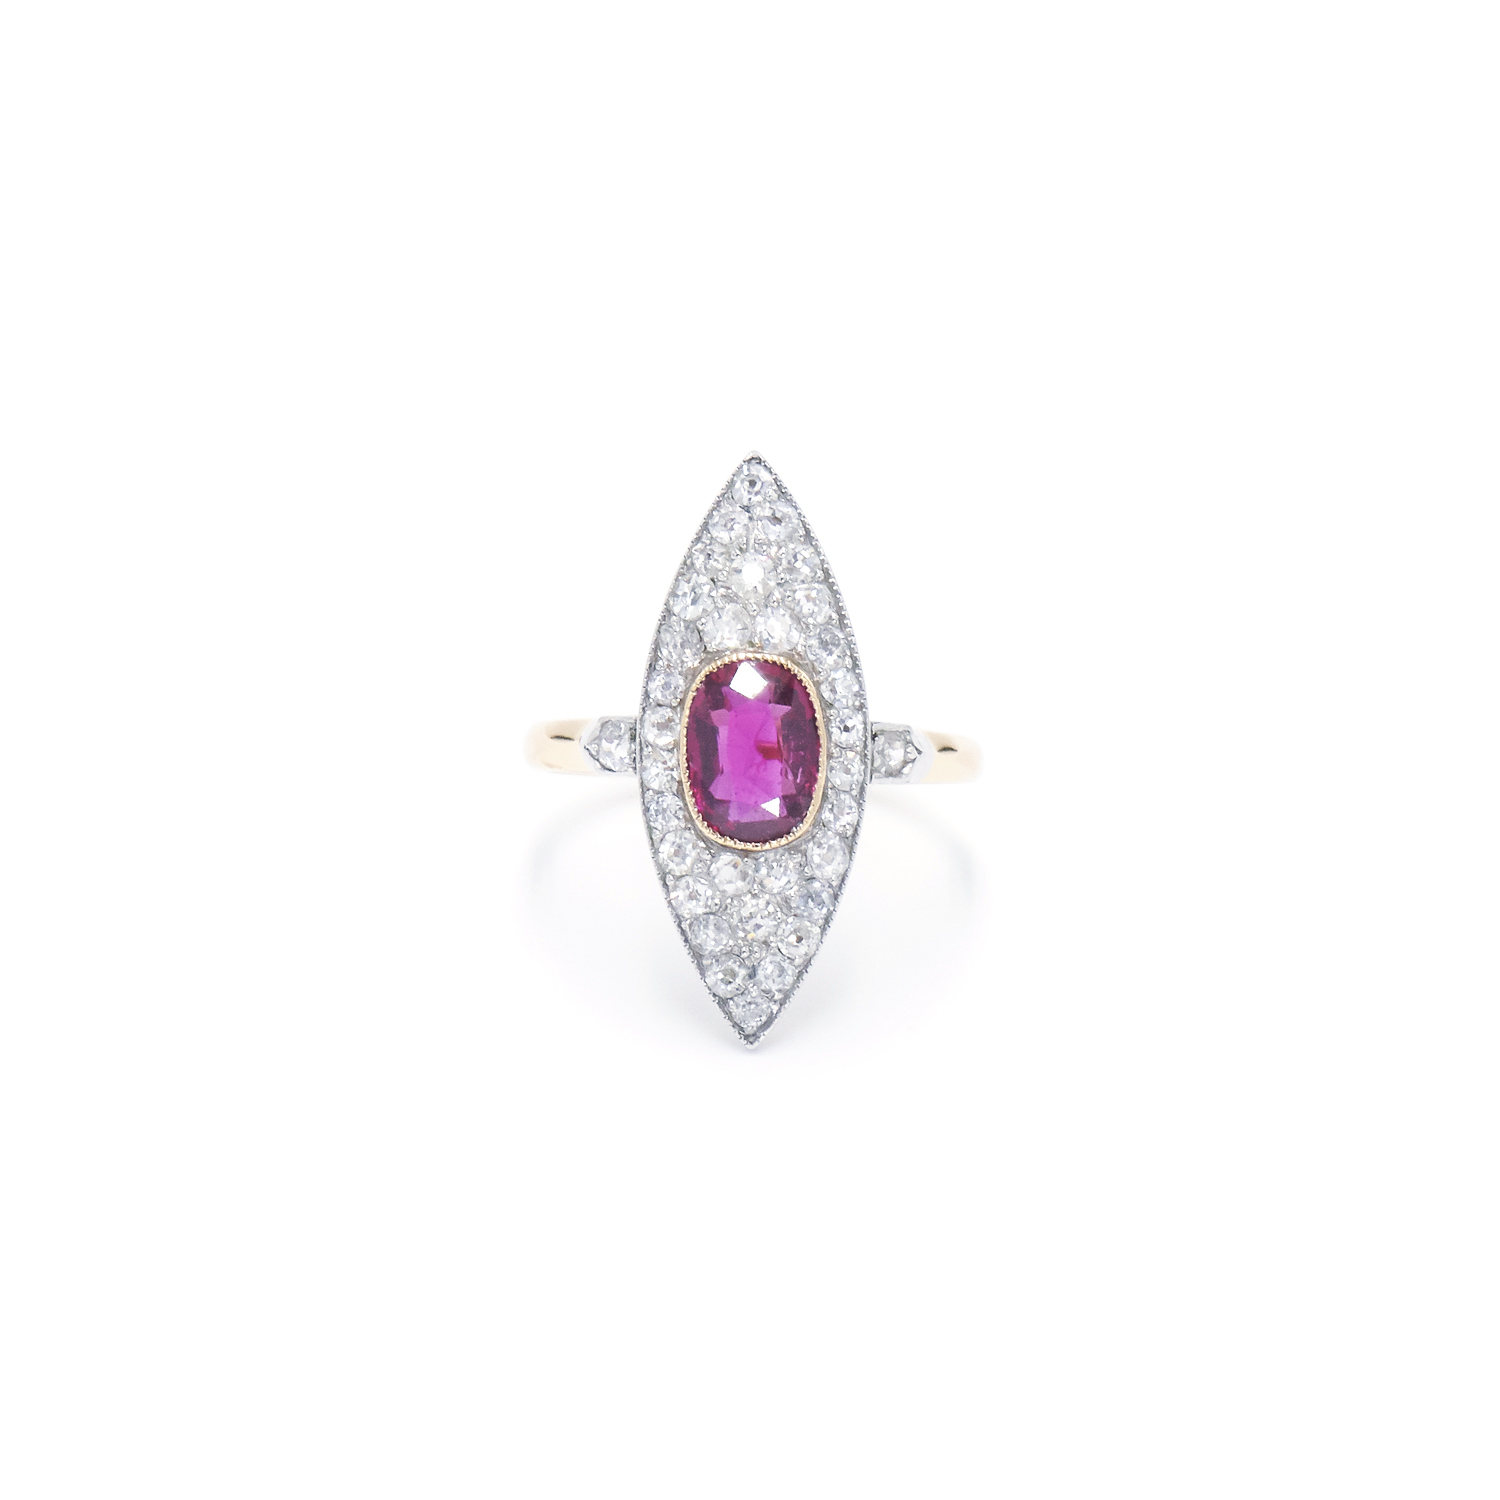 Edwardian Ruby and Diamond Navette Ring Style R-40100-FL-0-0